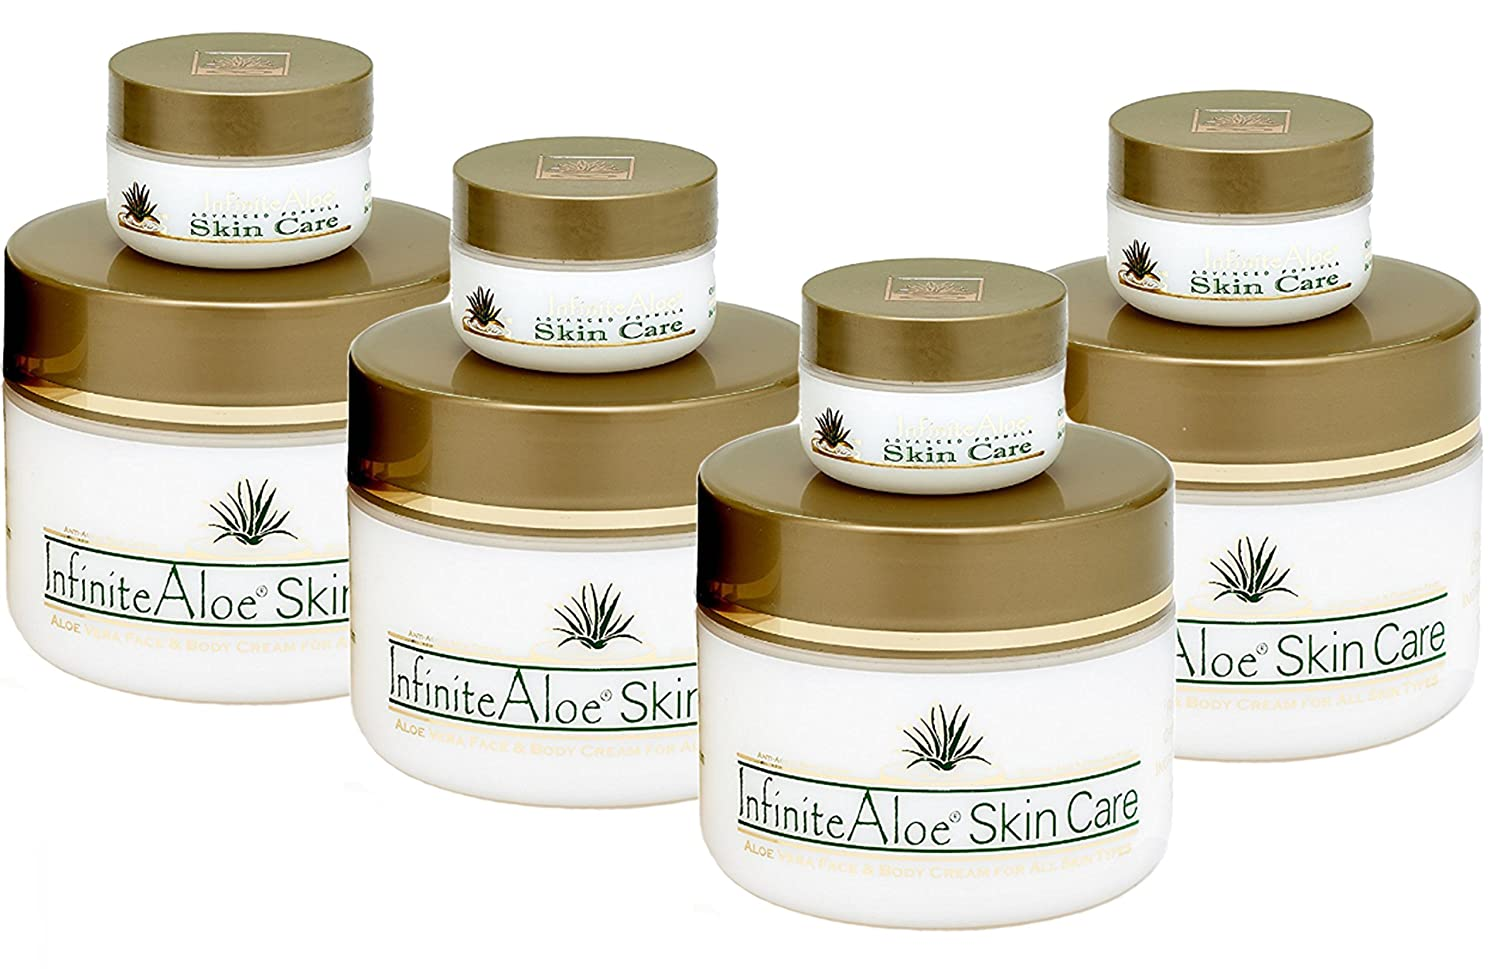 Infinite Aloe Skin Care Cream, Original Scent, 8oz. - 4 Jars (Plus 4 Bonus 0.5 oz InfiniteAloe Travel Jars)